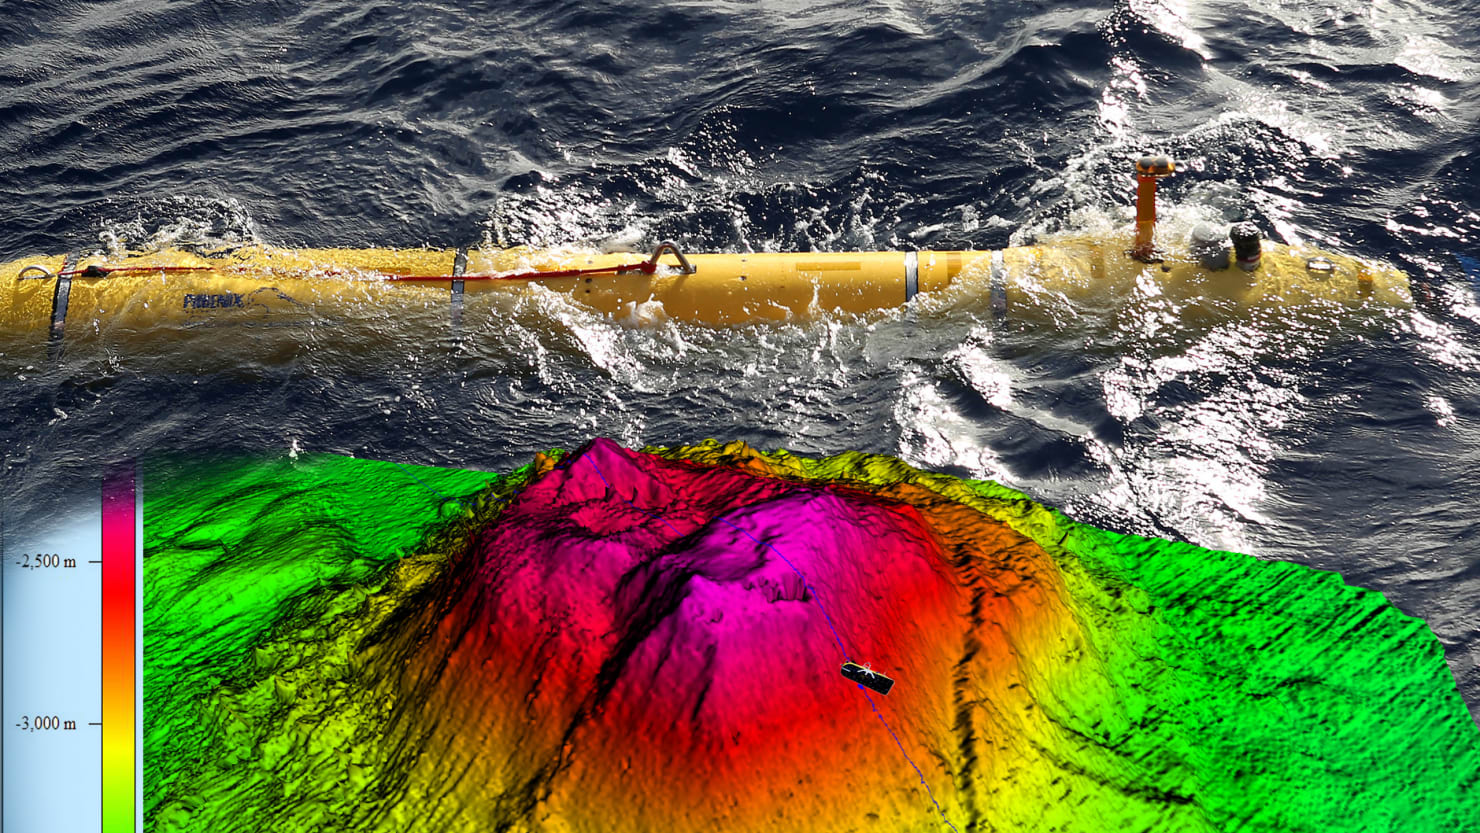 Underwater Volcanoes and Shipwrecks Found in the MH370 Search